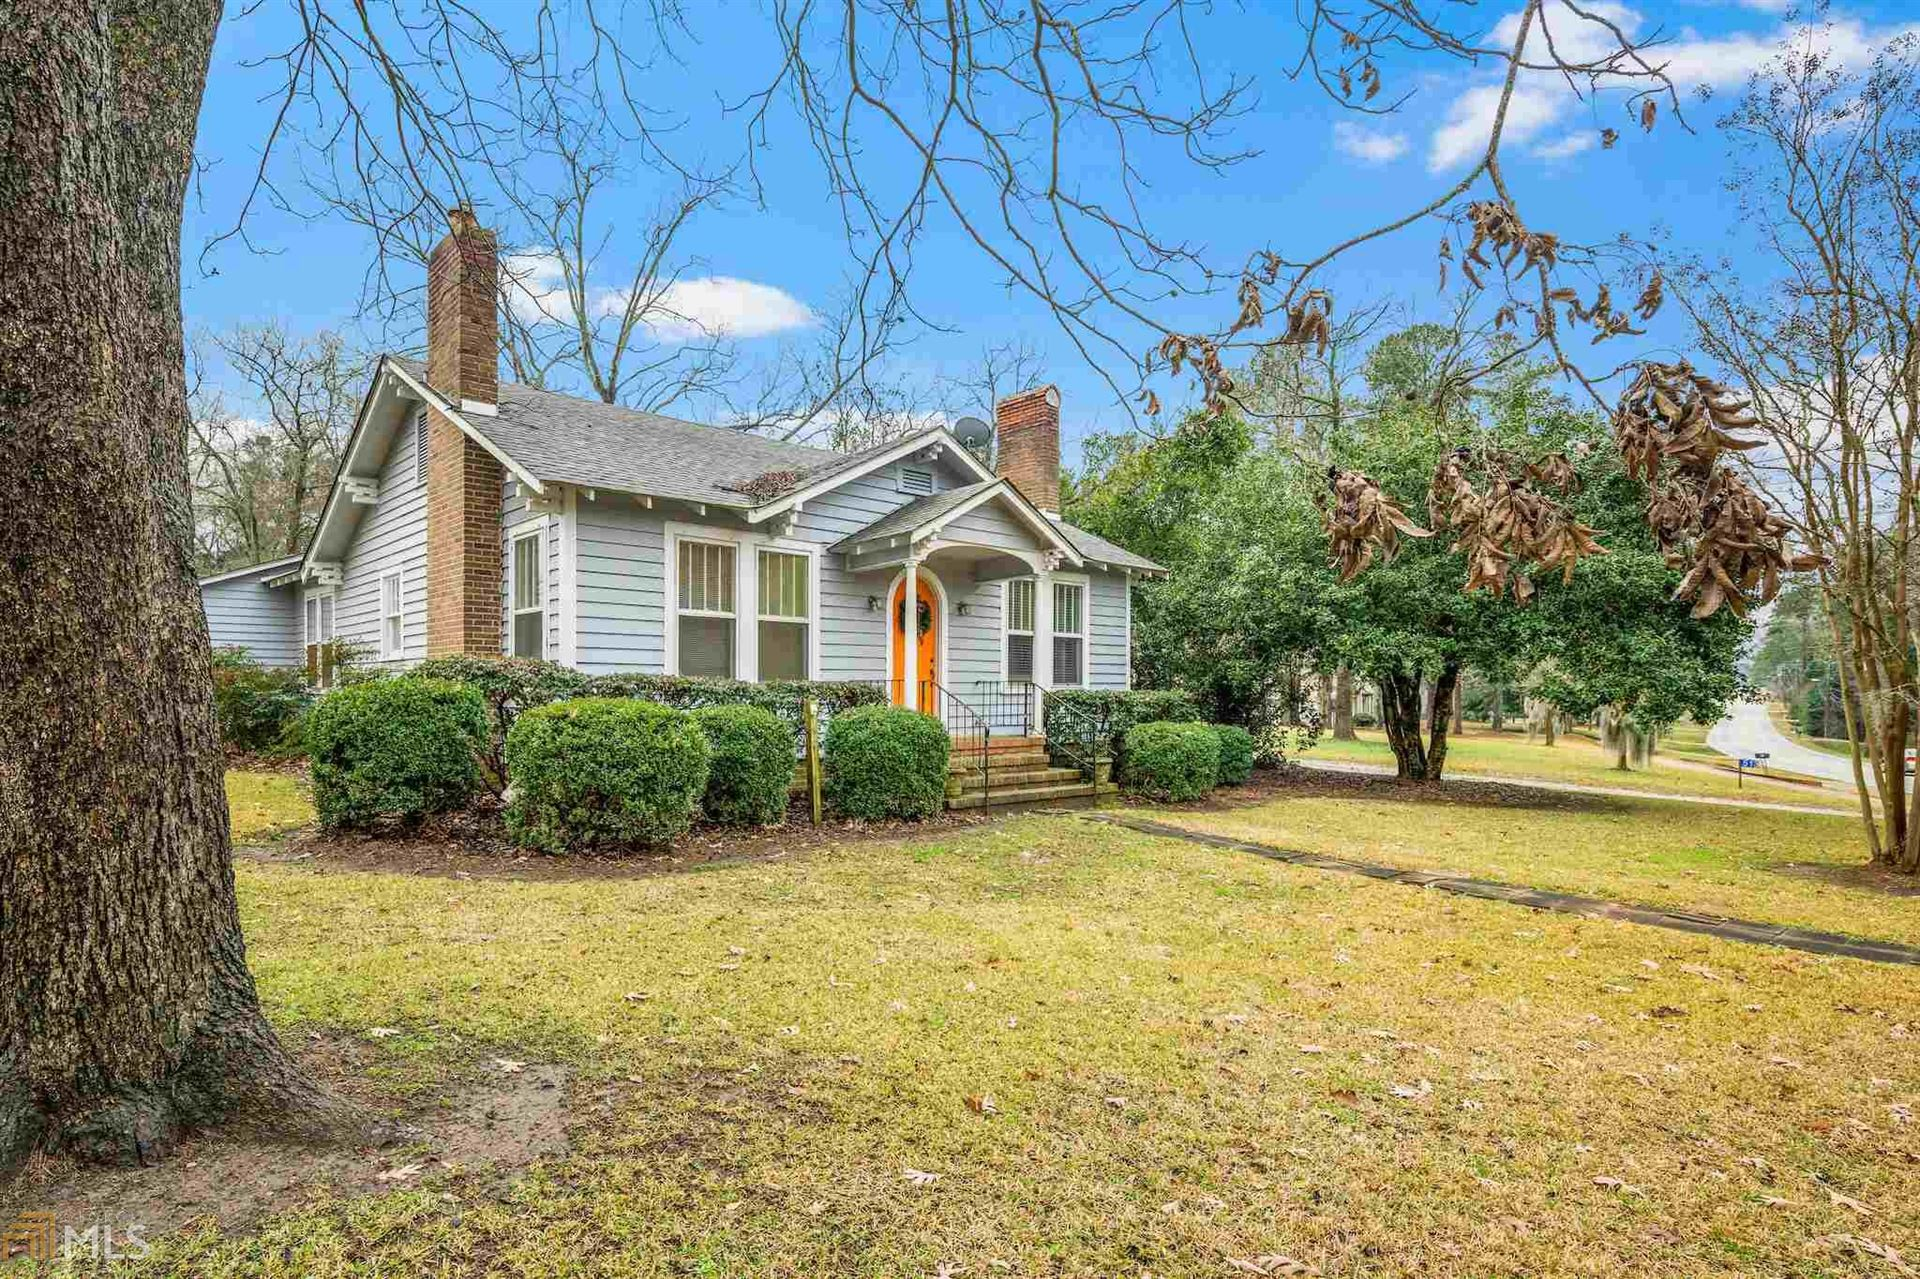 Photo of 511 W Church St, Sandersville, GA 31082 (MLS # 8550503)